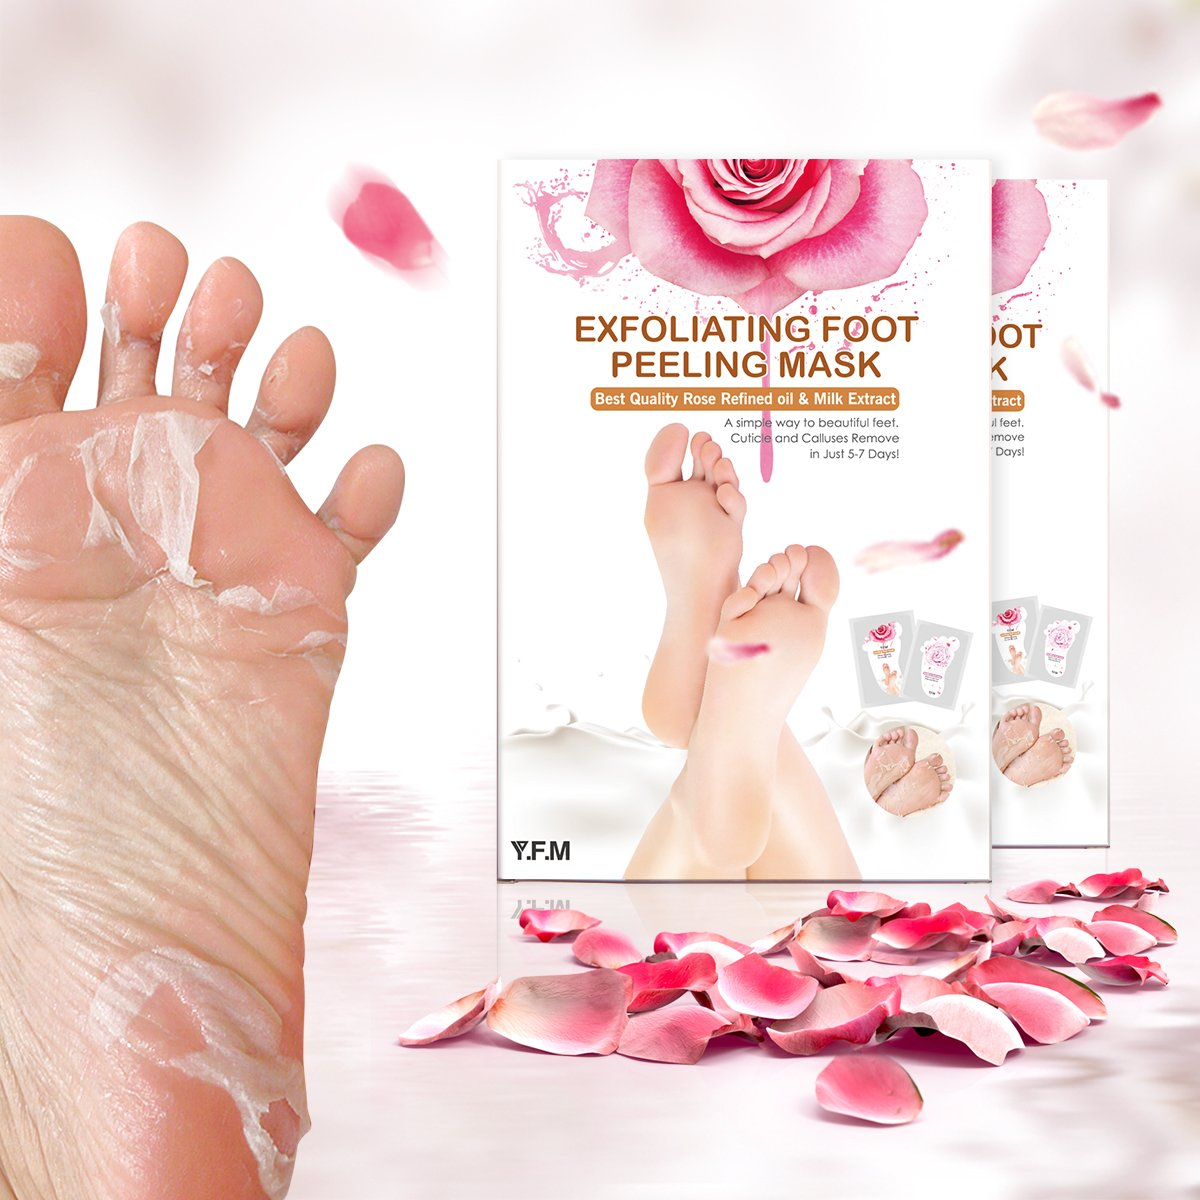 2 Pairs Rose Foot Mask, Luckyfine Mother's Day Gift Exfoliating Foot Mask Remove Calluses & Dead Skin Cells, Rose Scented, Peel second day, Completely within 4-7 days